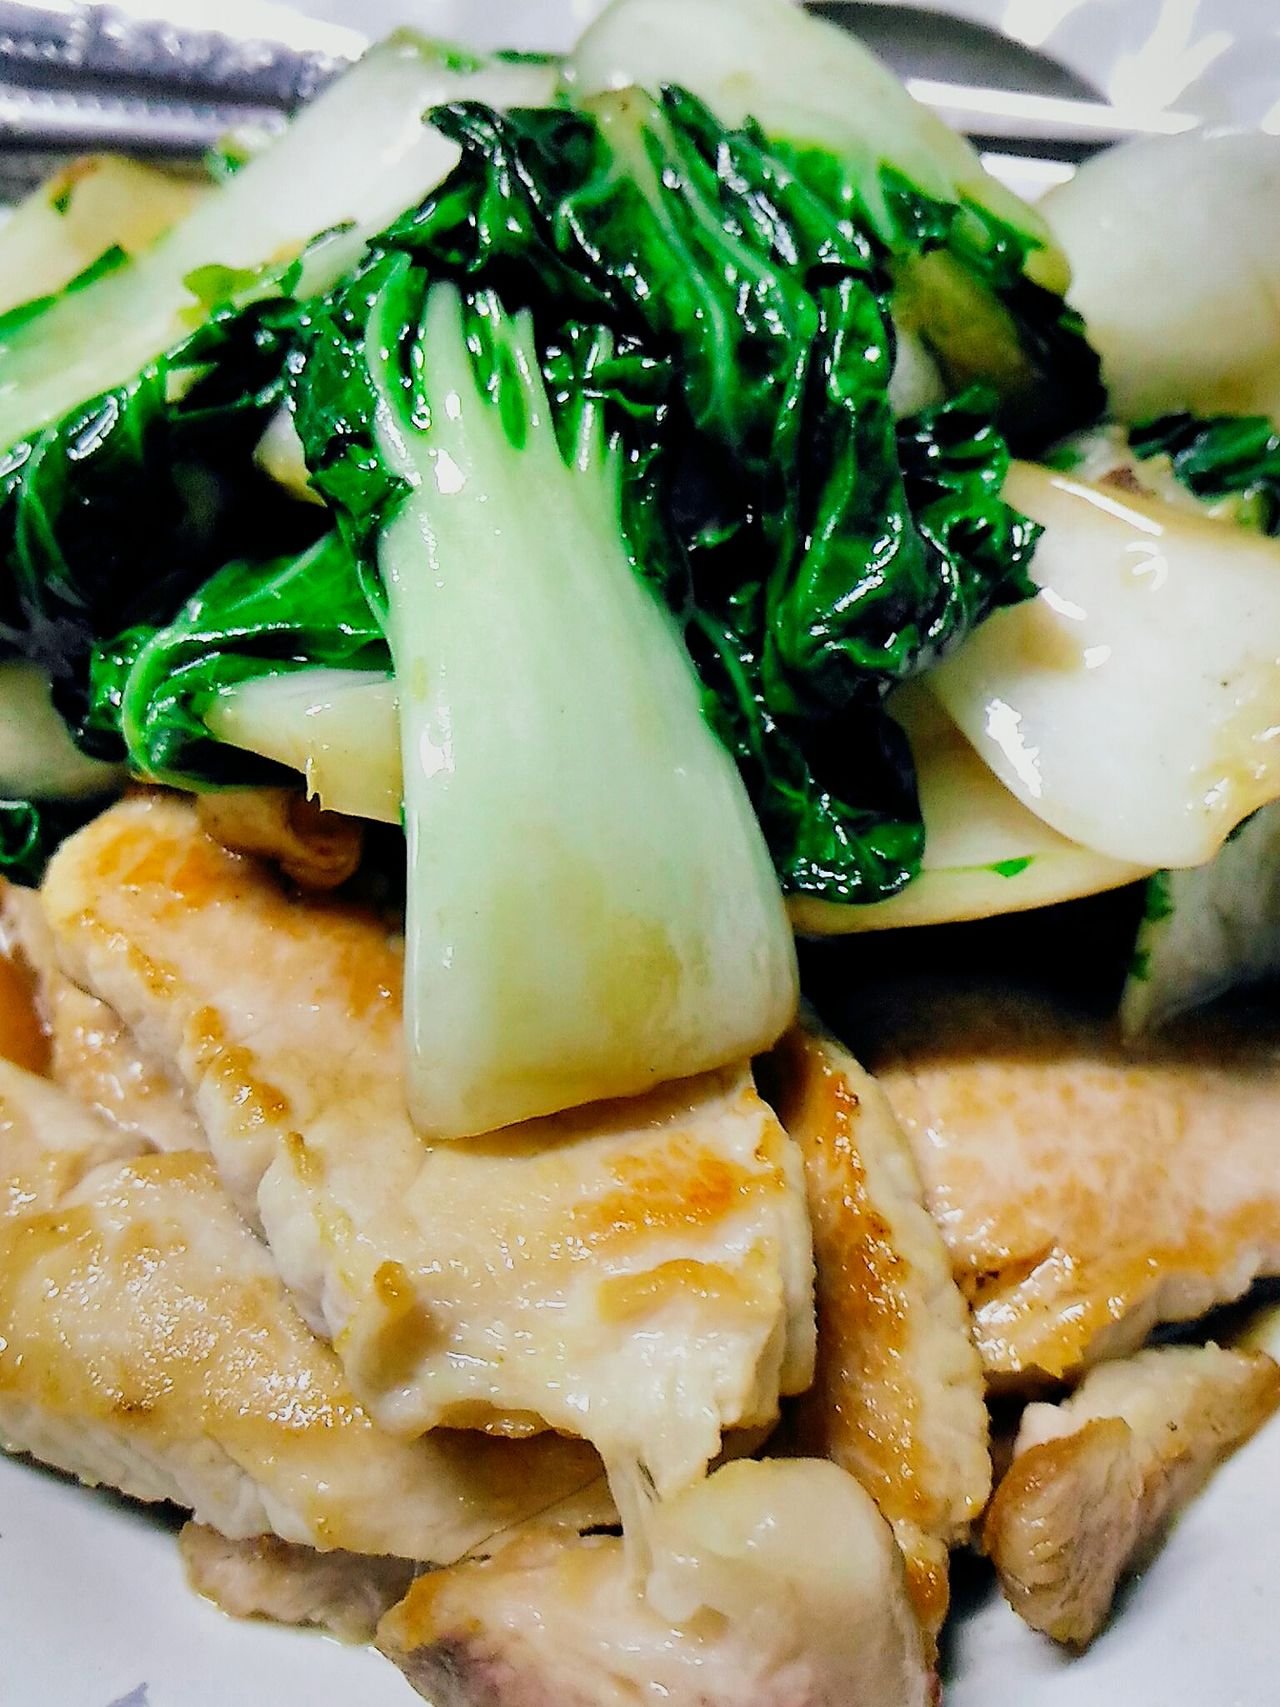 Food Healthy Eating Asian Food Freshness Dietfood Clean Eating Hungry